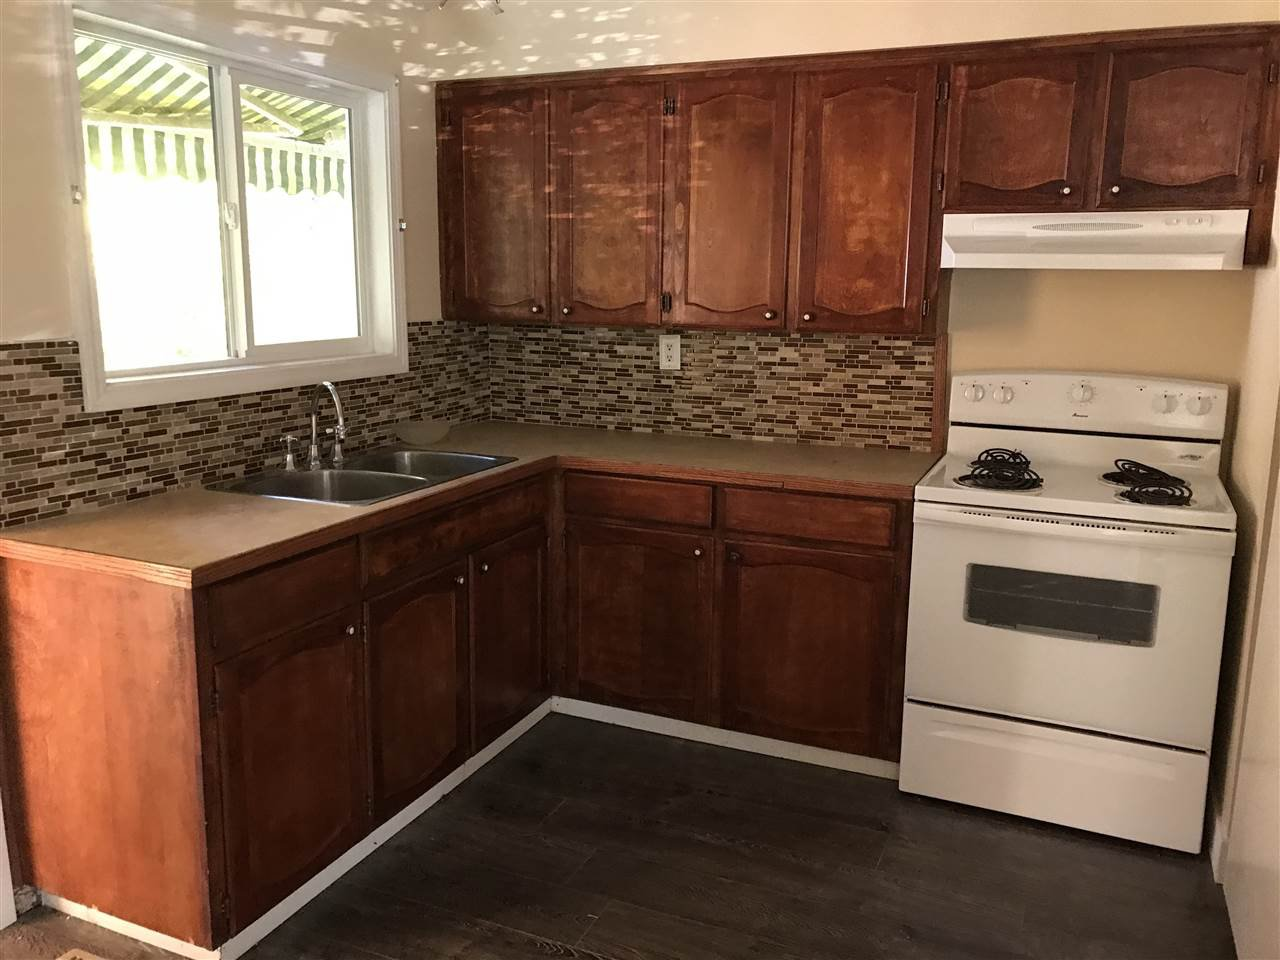 """Photo 4: Photos: 15859 THRIFT Avenue: White Rock House for sale in """"White Rock"""" (South Surrey White Rock)  : MLS®# R2220457"""